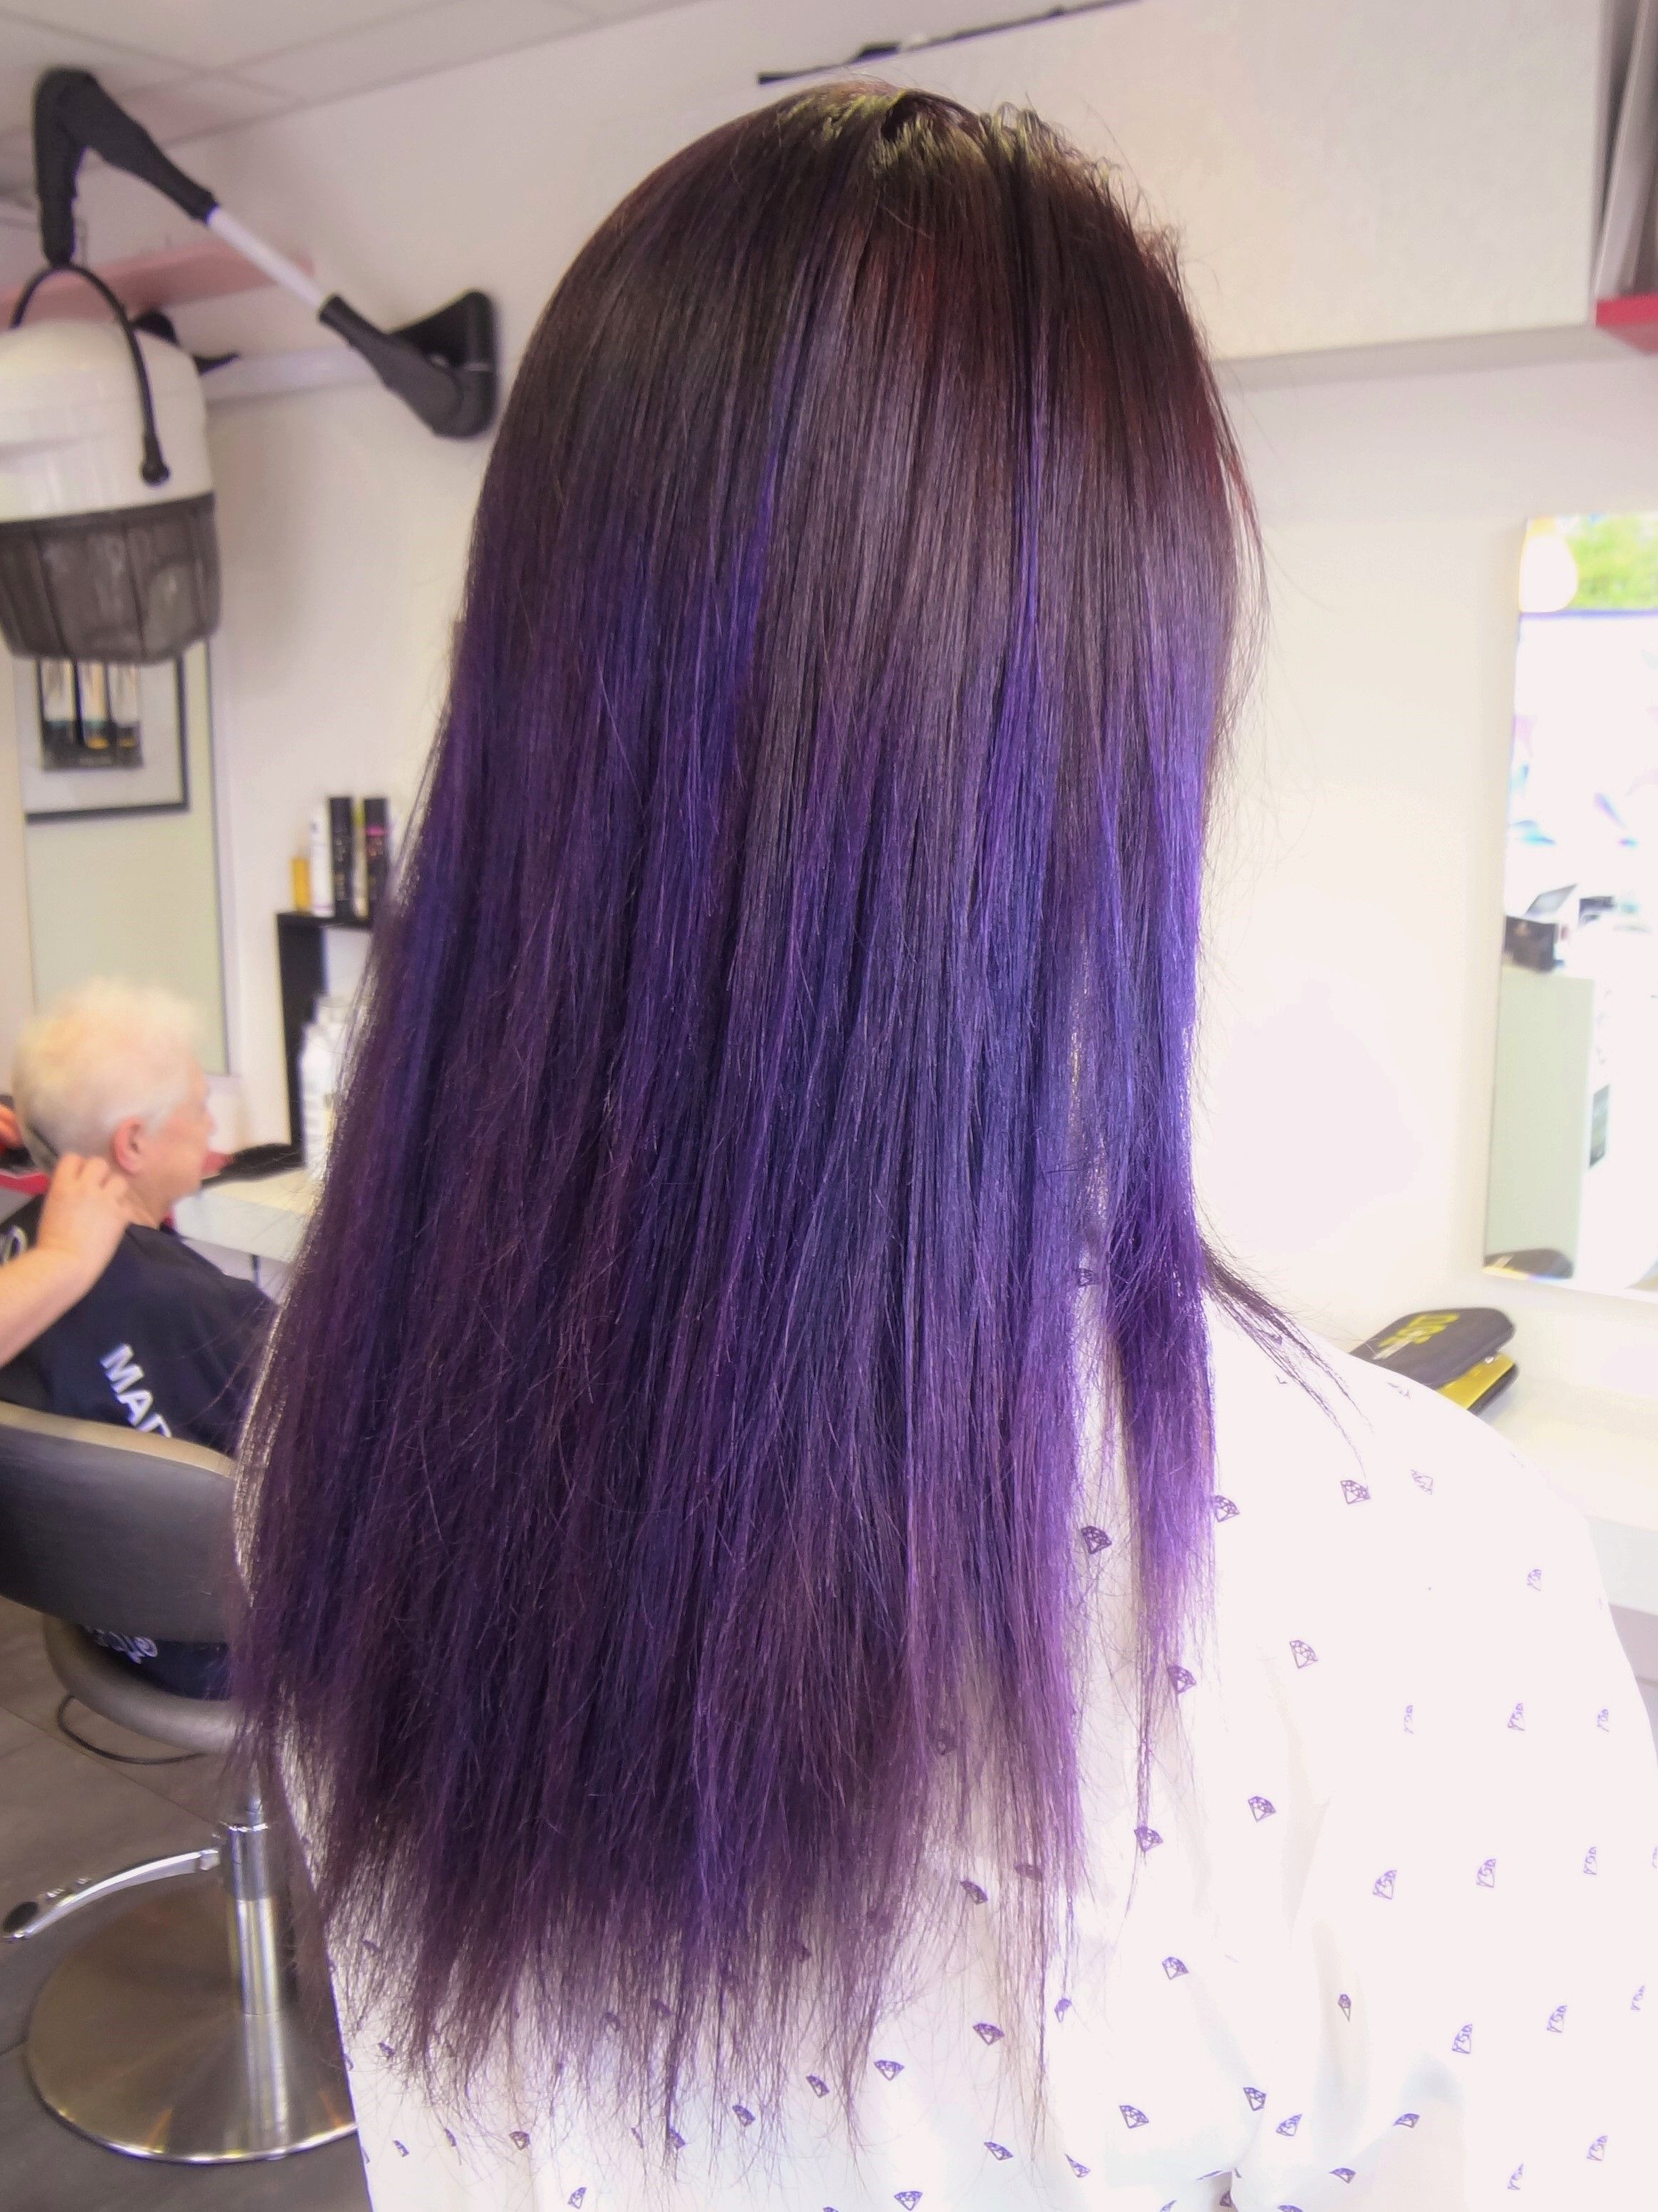 Coloration Mauve Ombree Realisee Au Salon Herveou Coiffure A Brest Hair Blog Long Hair Styles Hair Styles